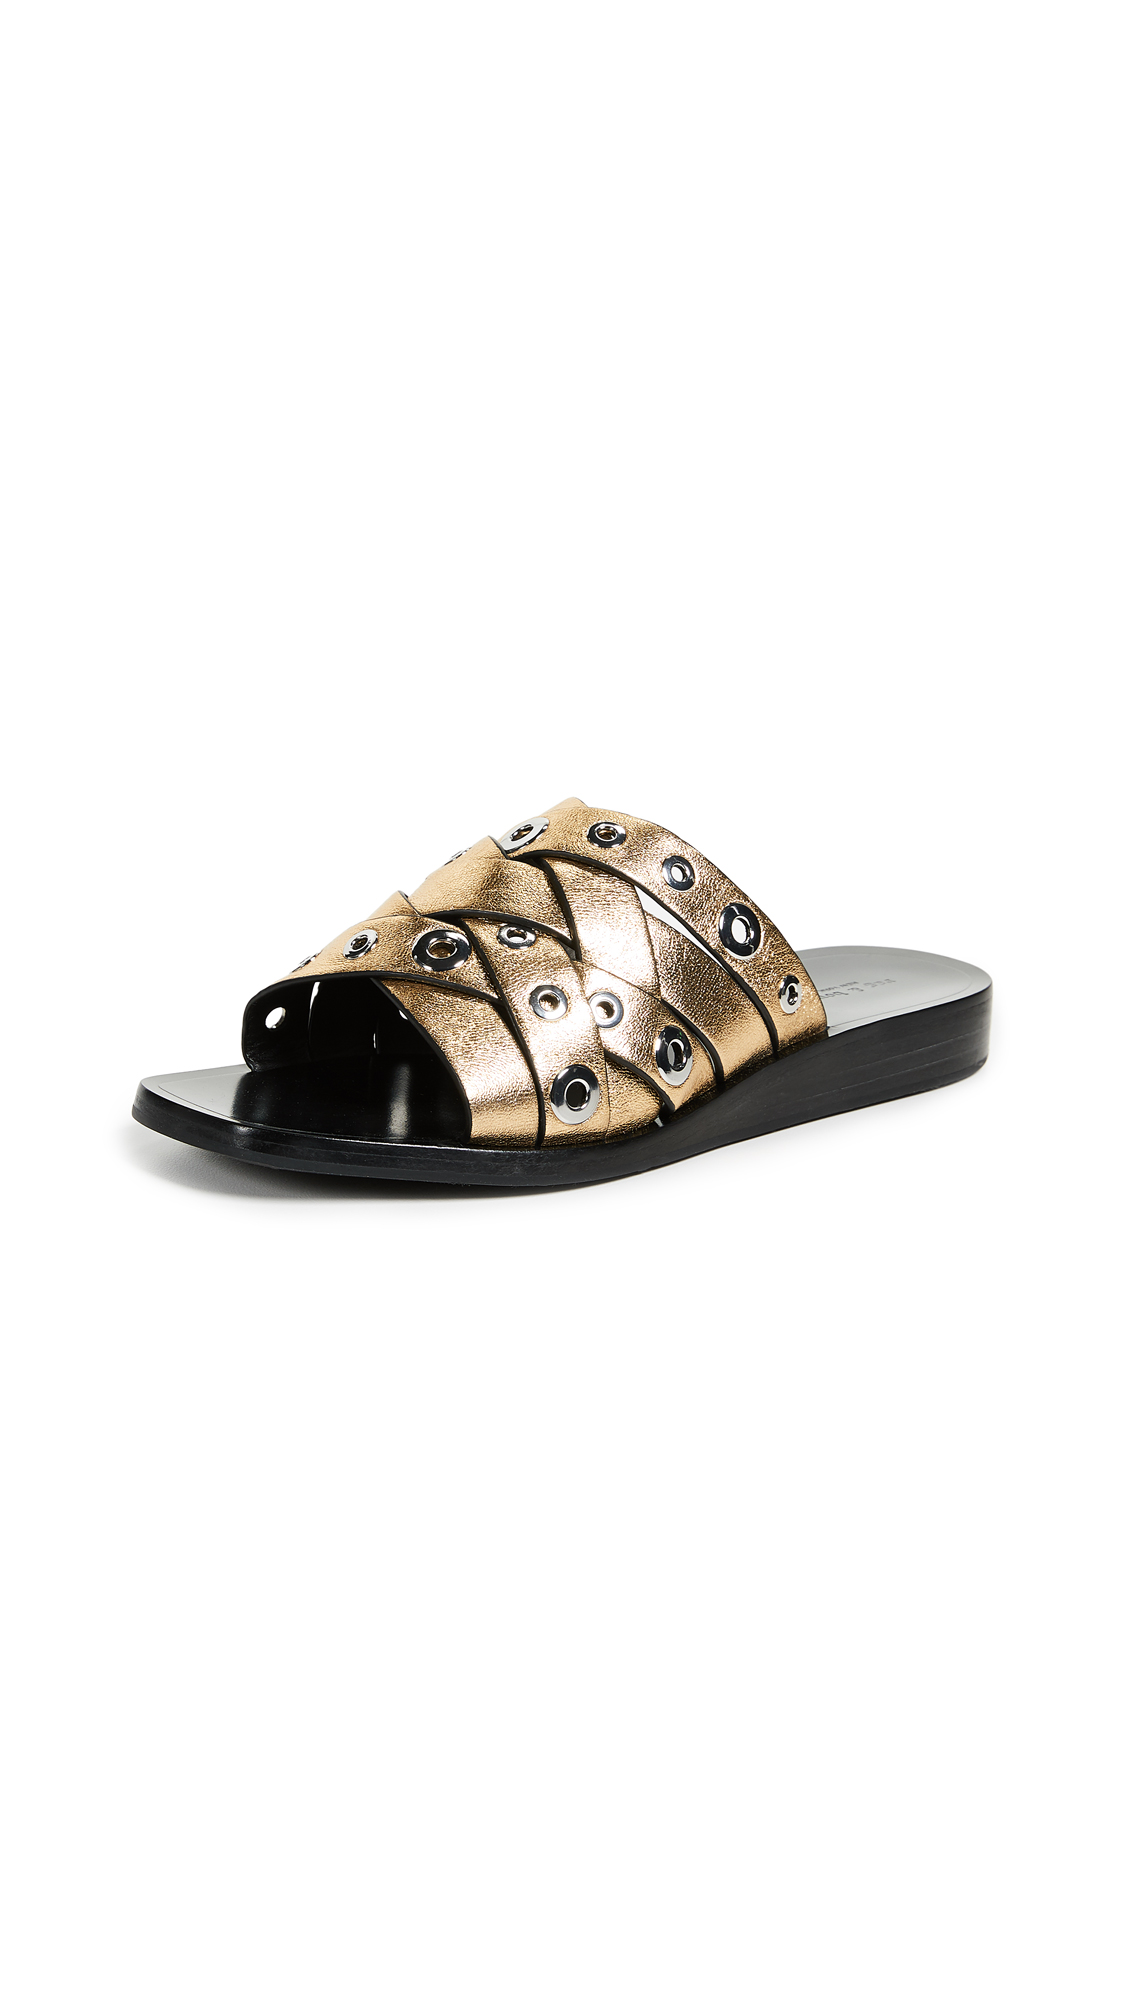 Rag & Bone Hartley Slides - Gold